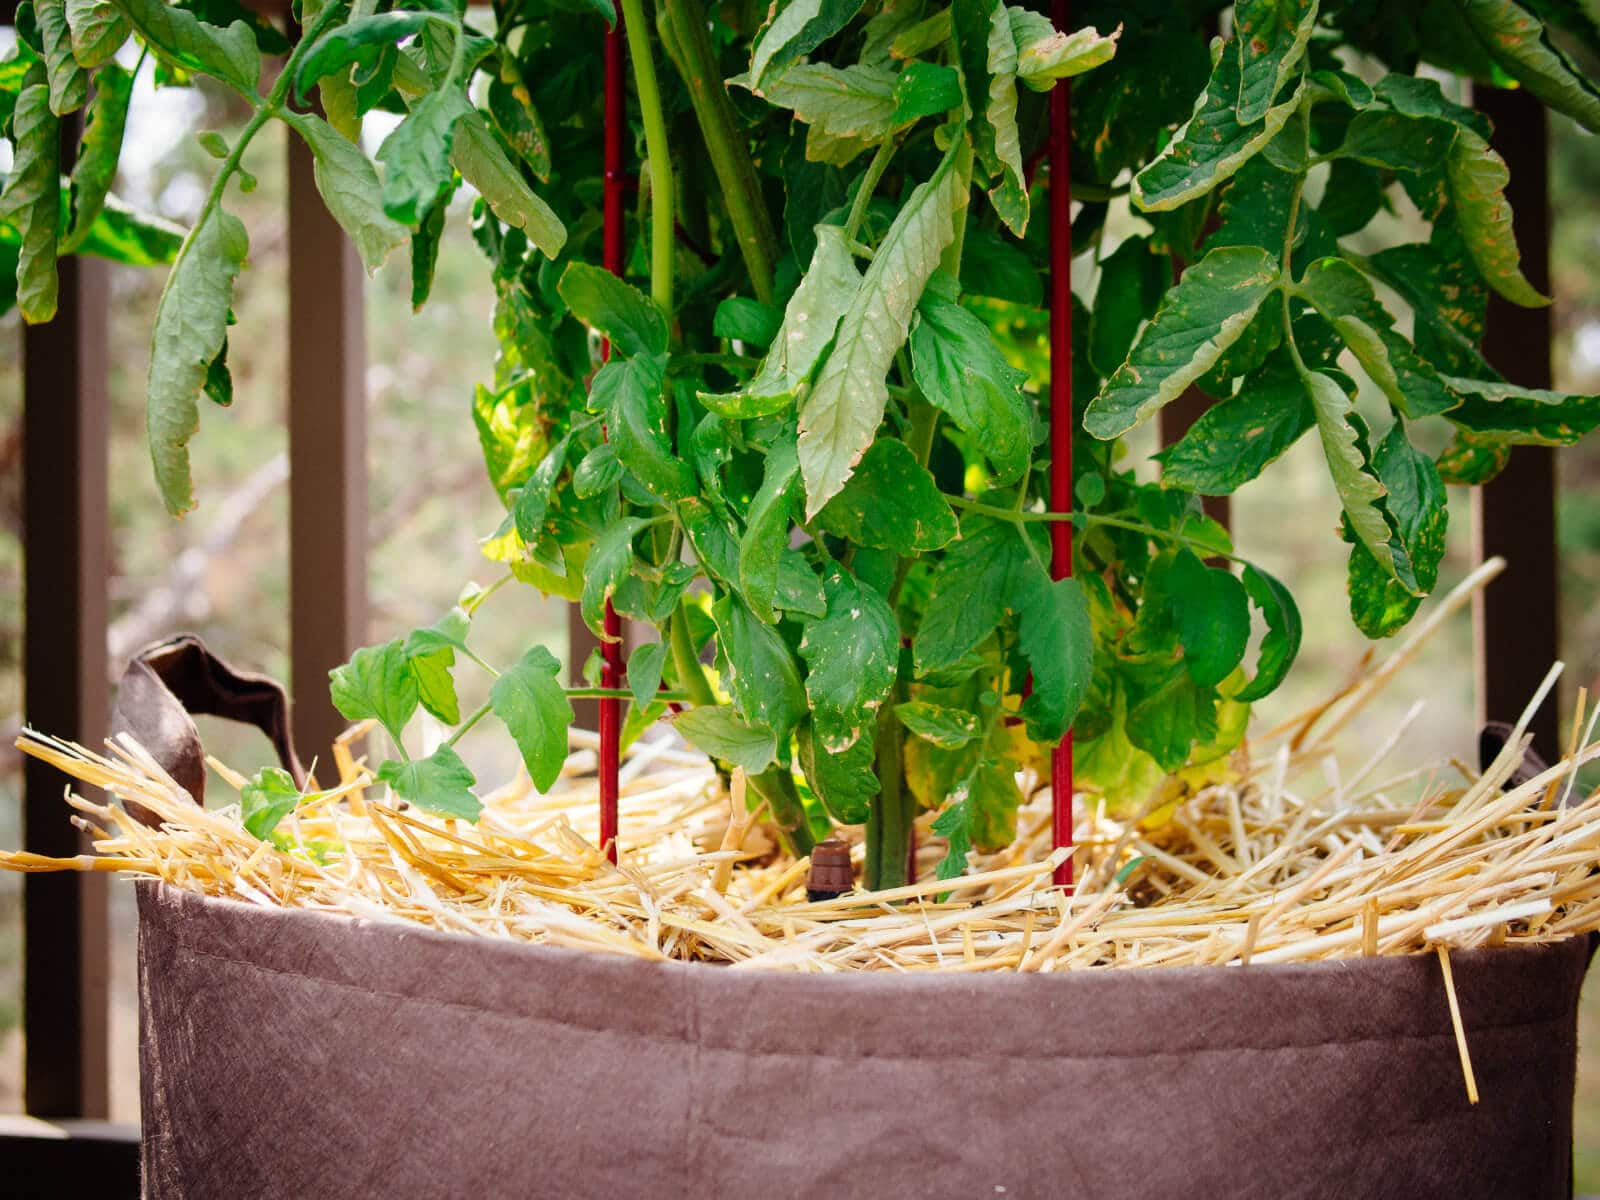 Mulch containers to help retain moisture in the soil